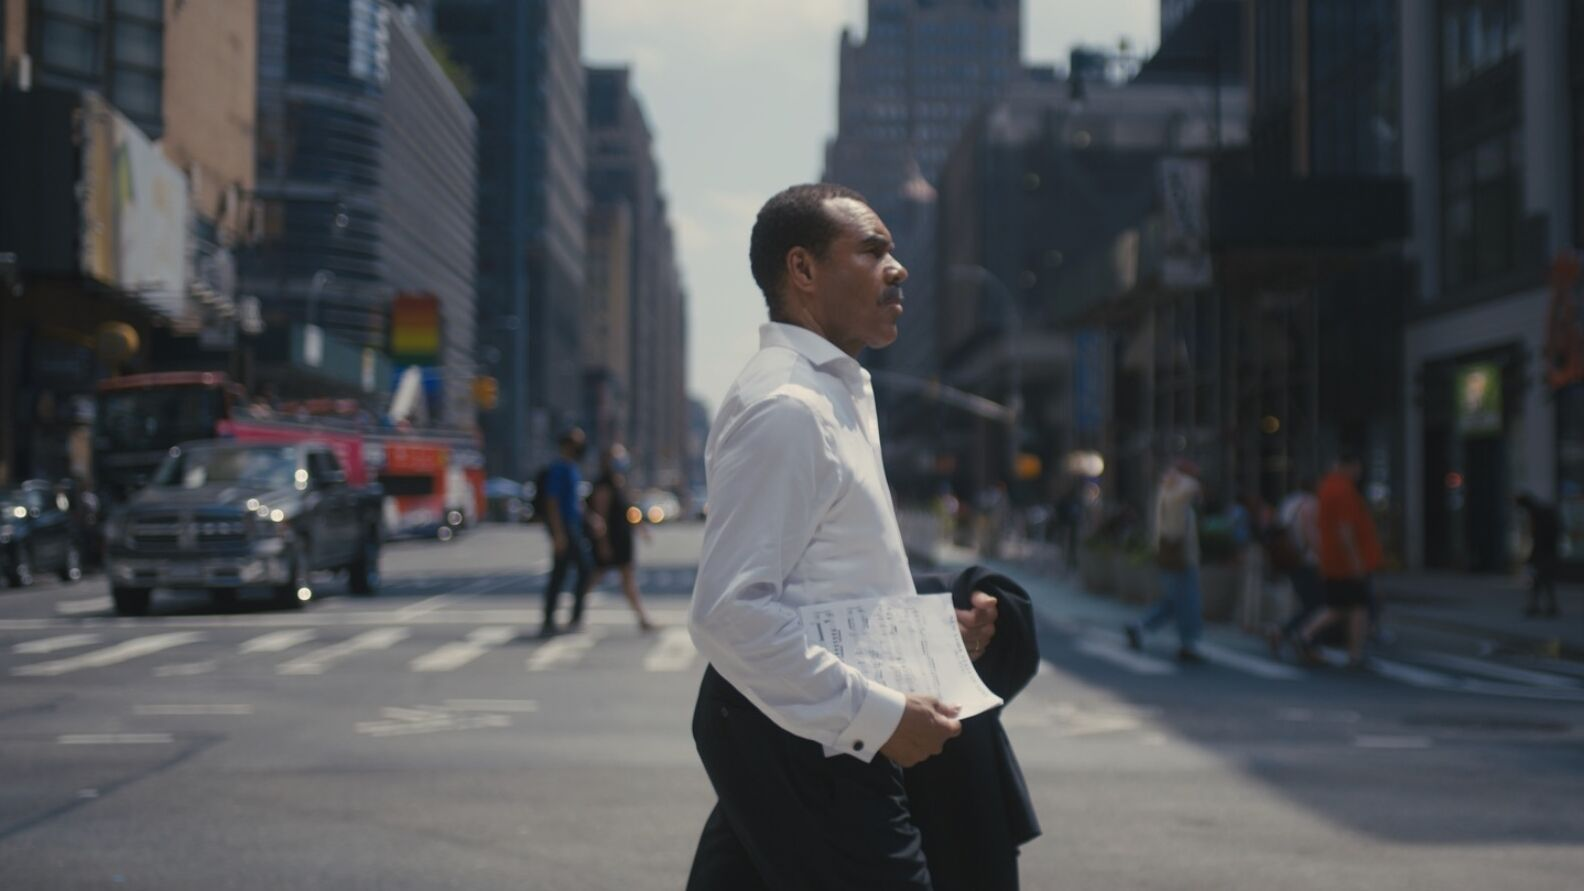 A ma in white shirt crosses avenue in New York City, holding a dark formal jacket and sheet music at his side.